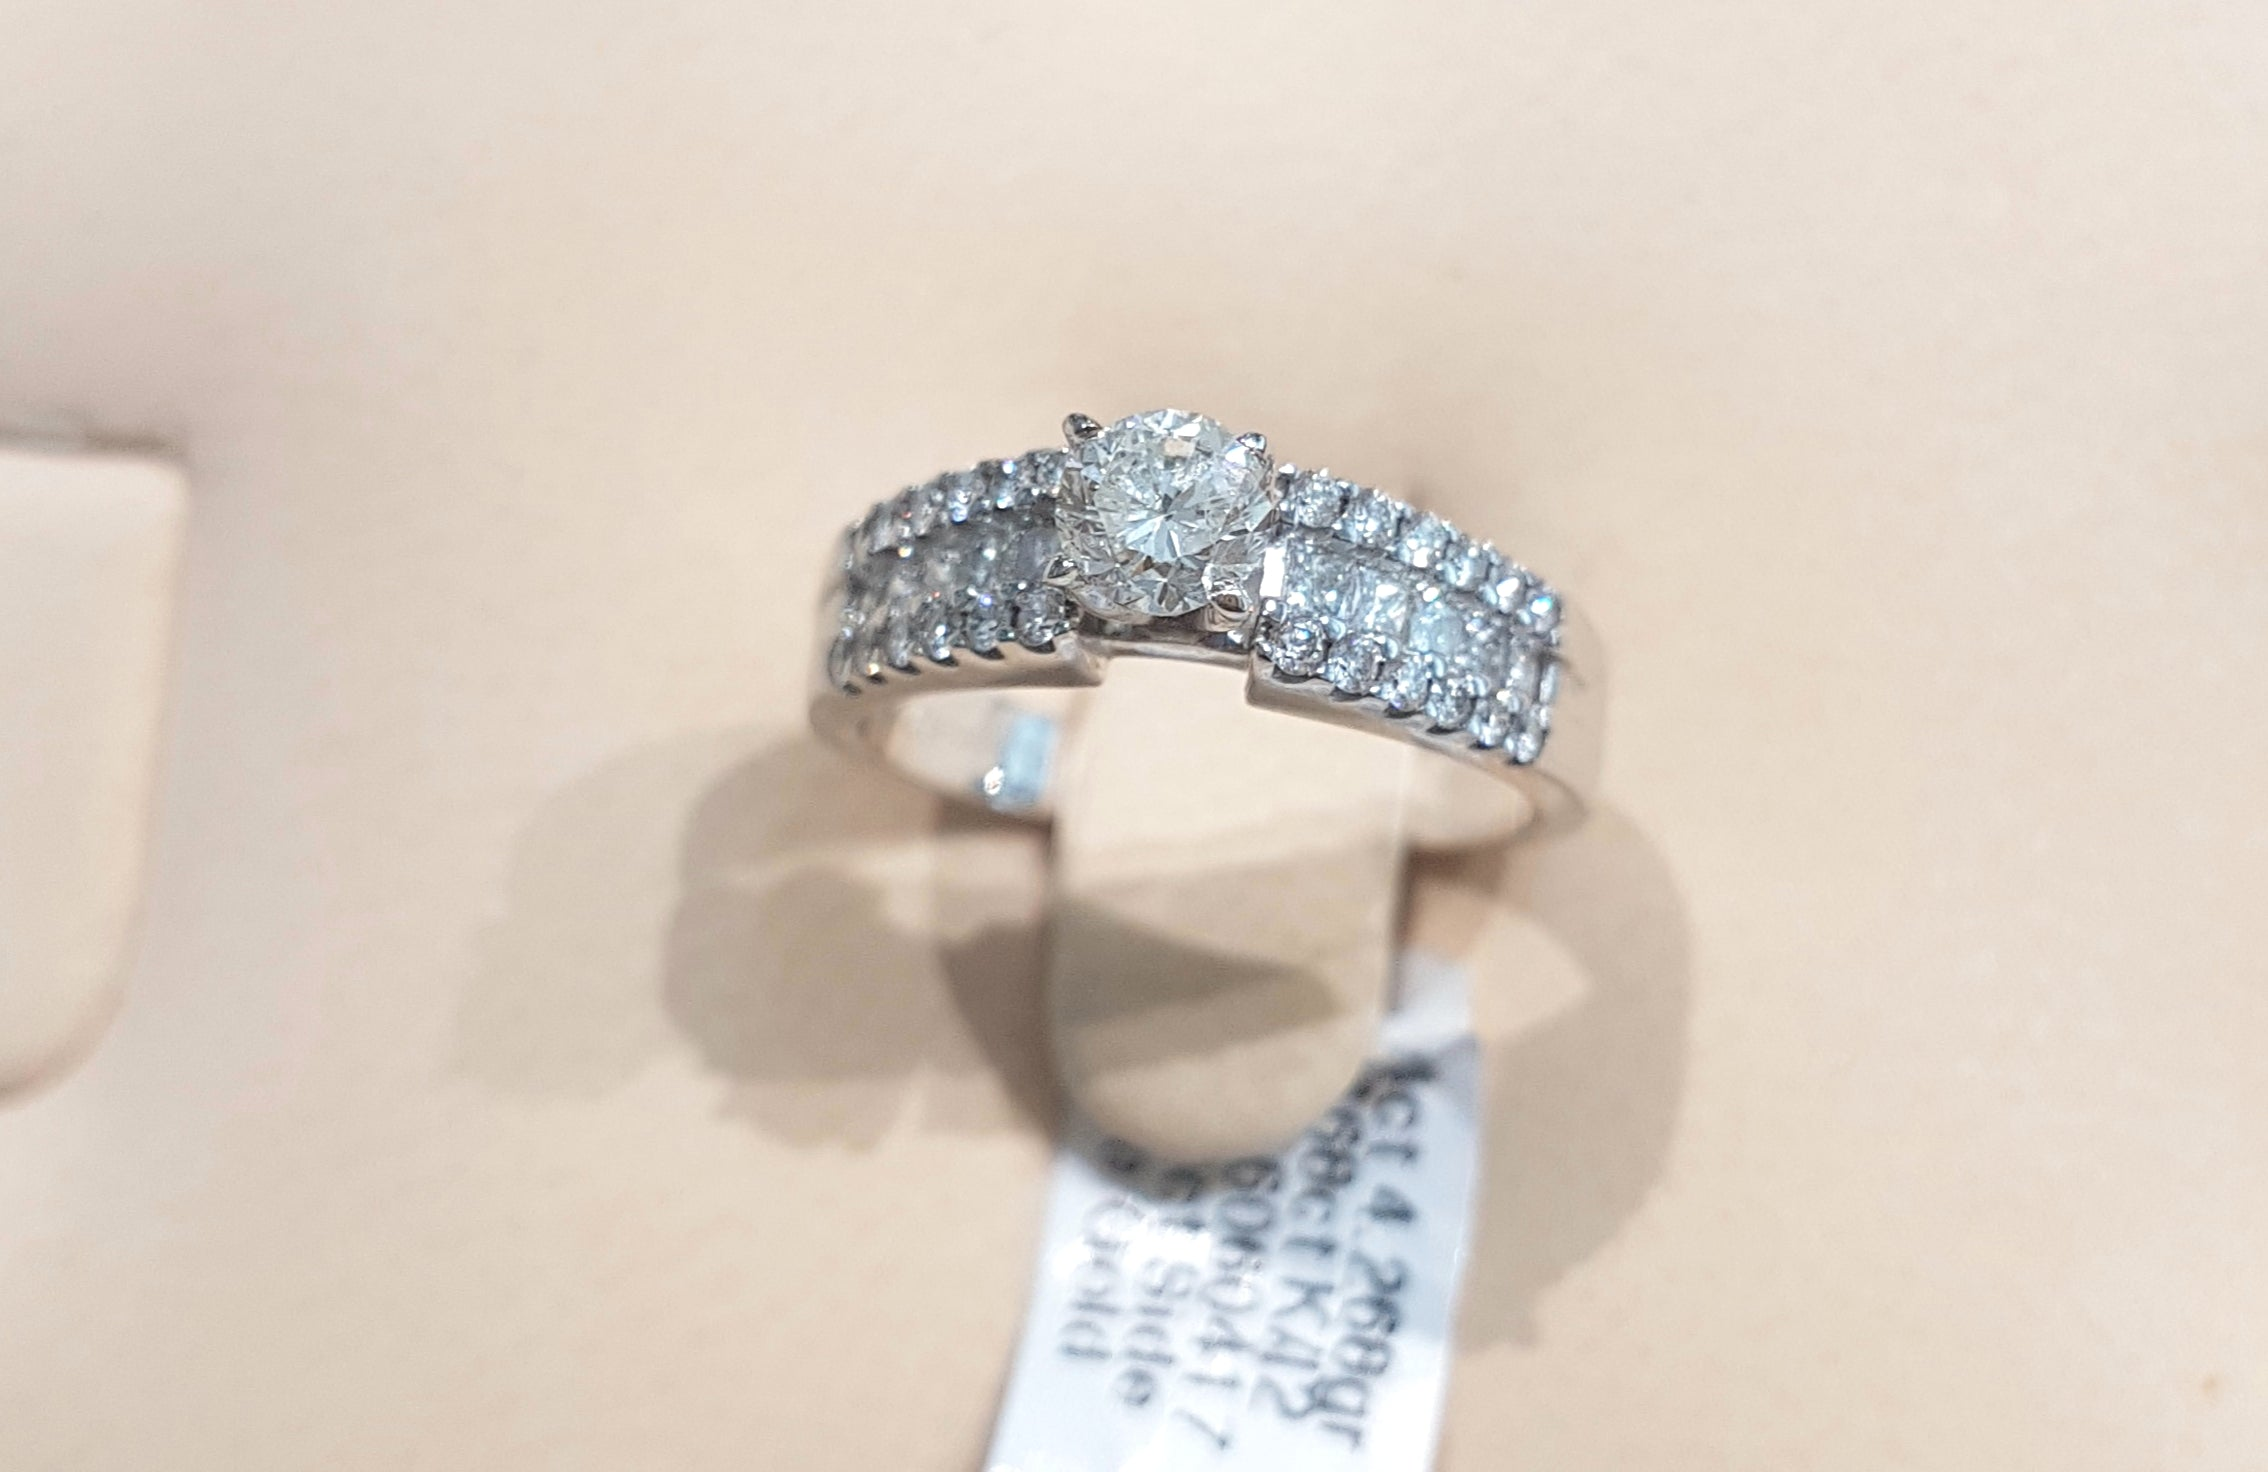 0.468ct [Centre] | 0.520ct Round / Princess Cut Diamond Ring| set in 14kt White Gold.